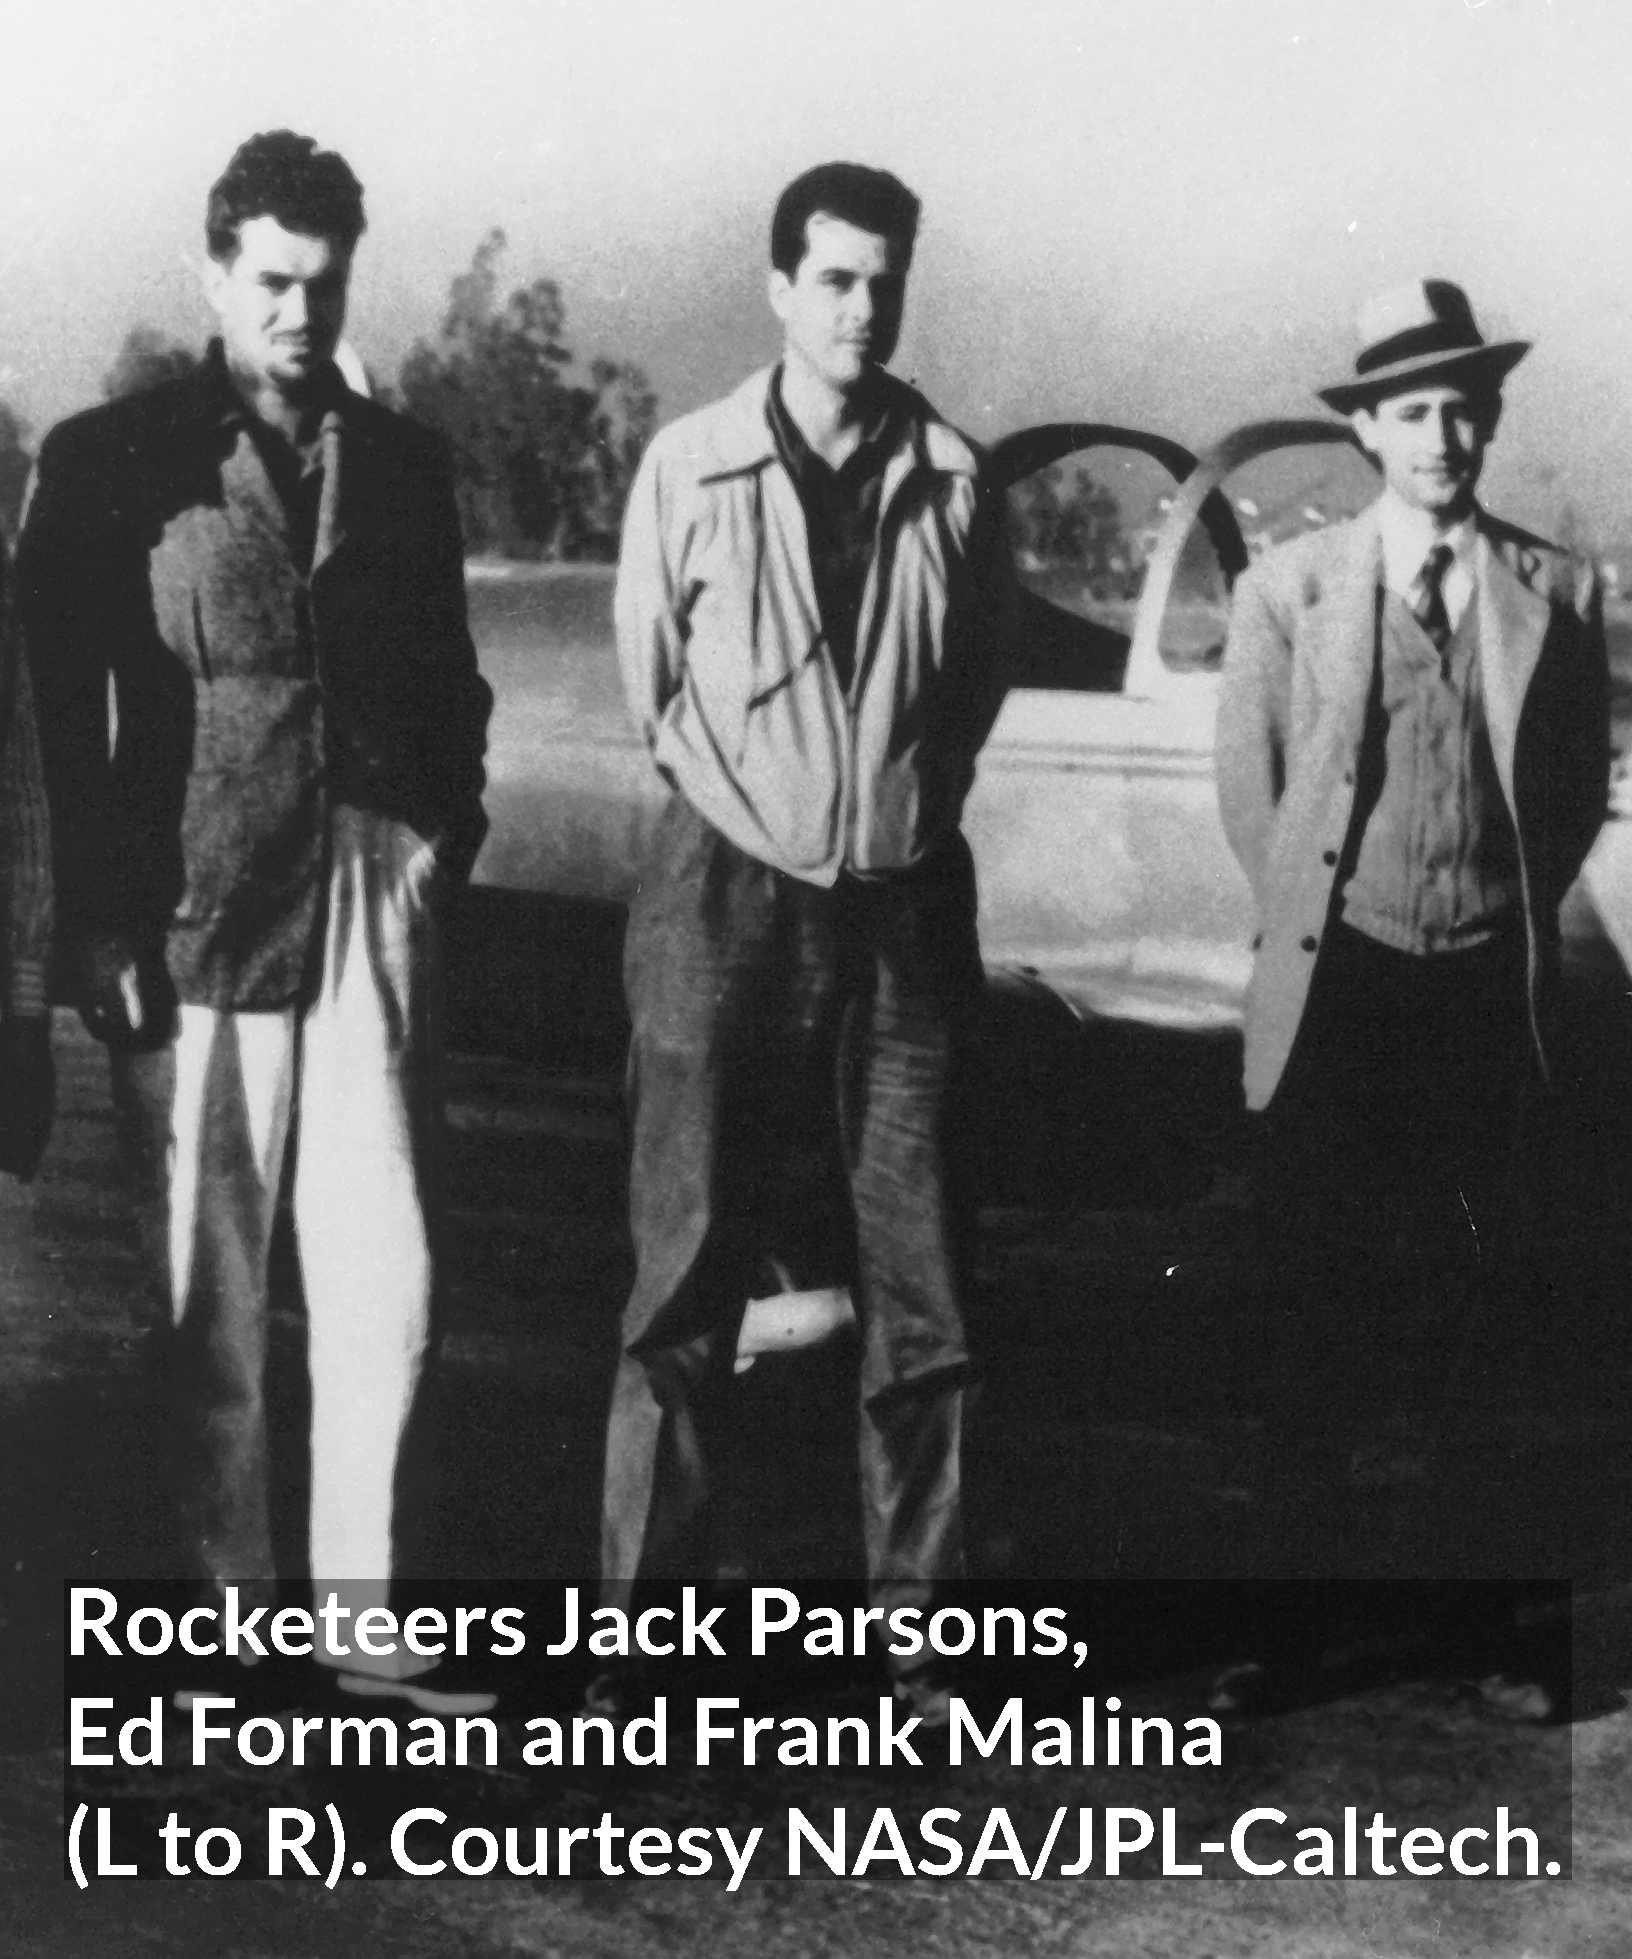 Rocketeers Jack Parsons, Ed Forman and Frank Malina